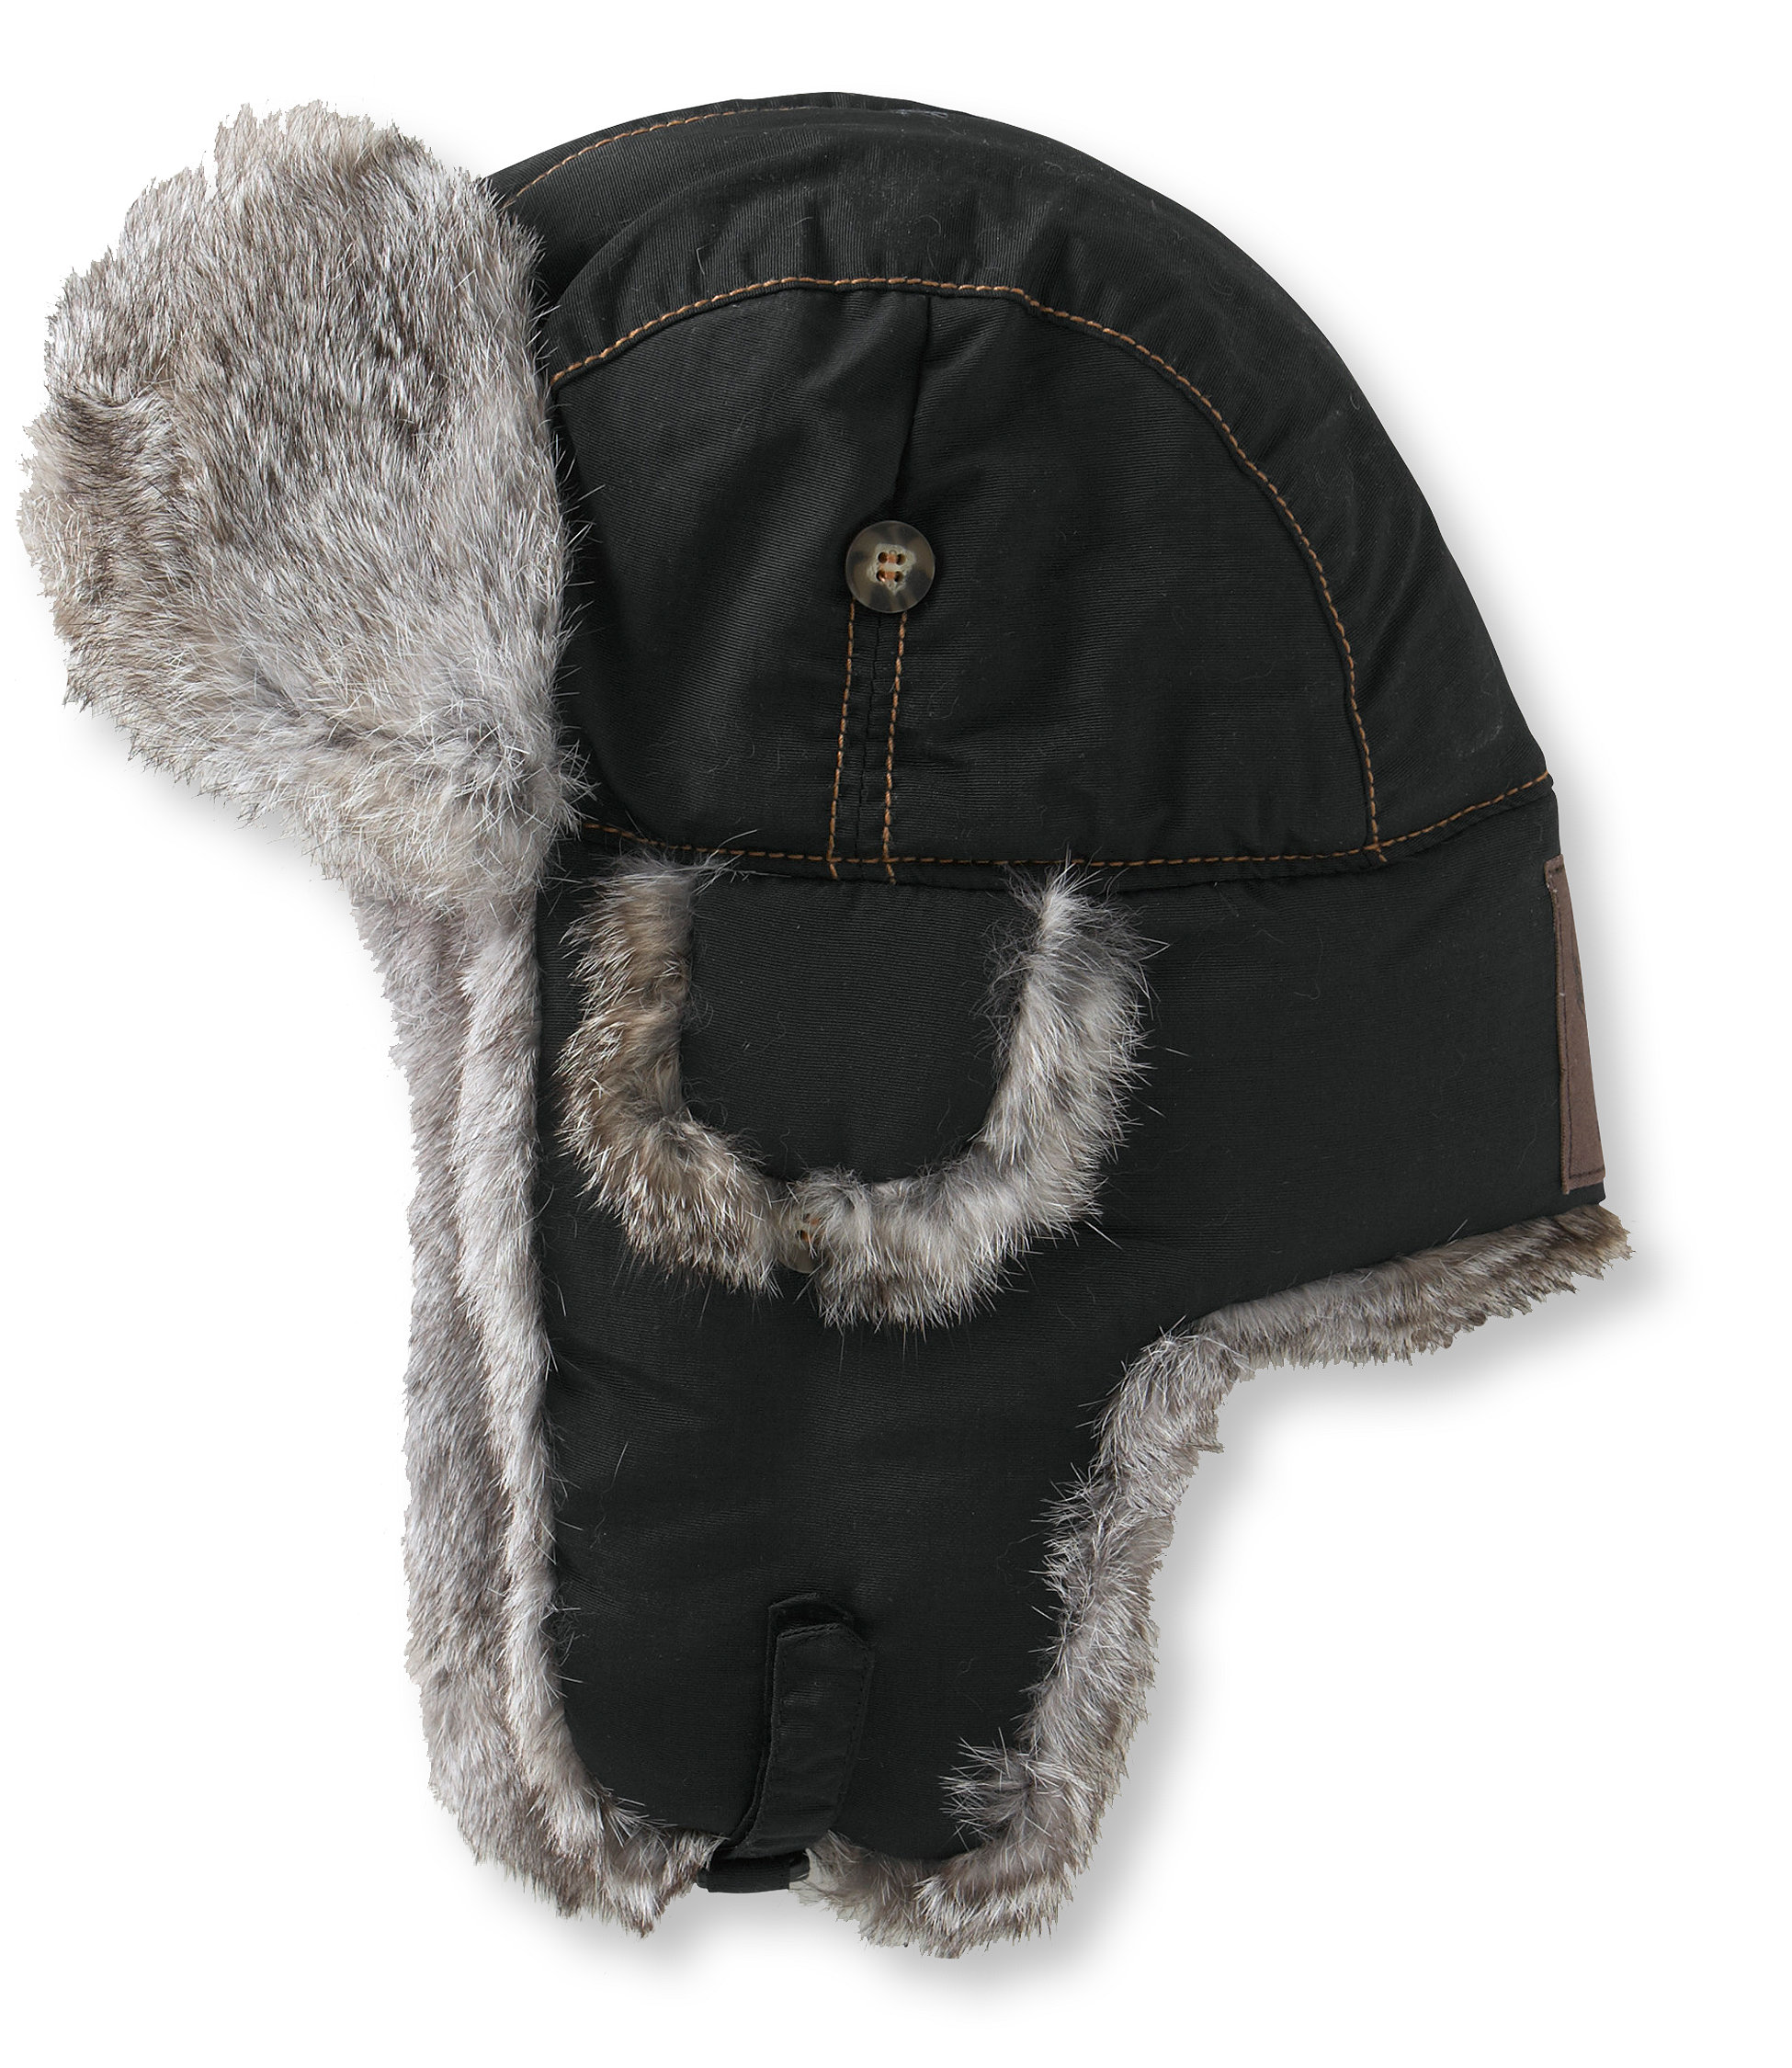 285048 Kids Mad Bomber Hat